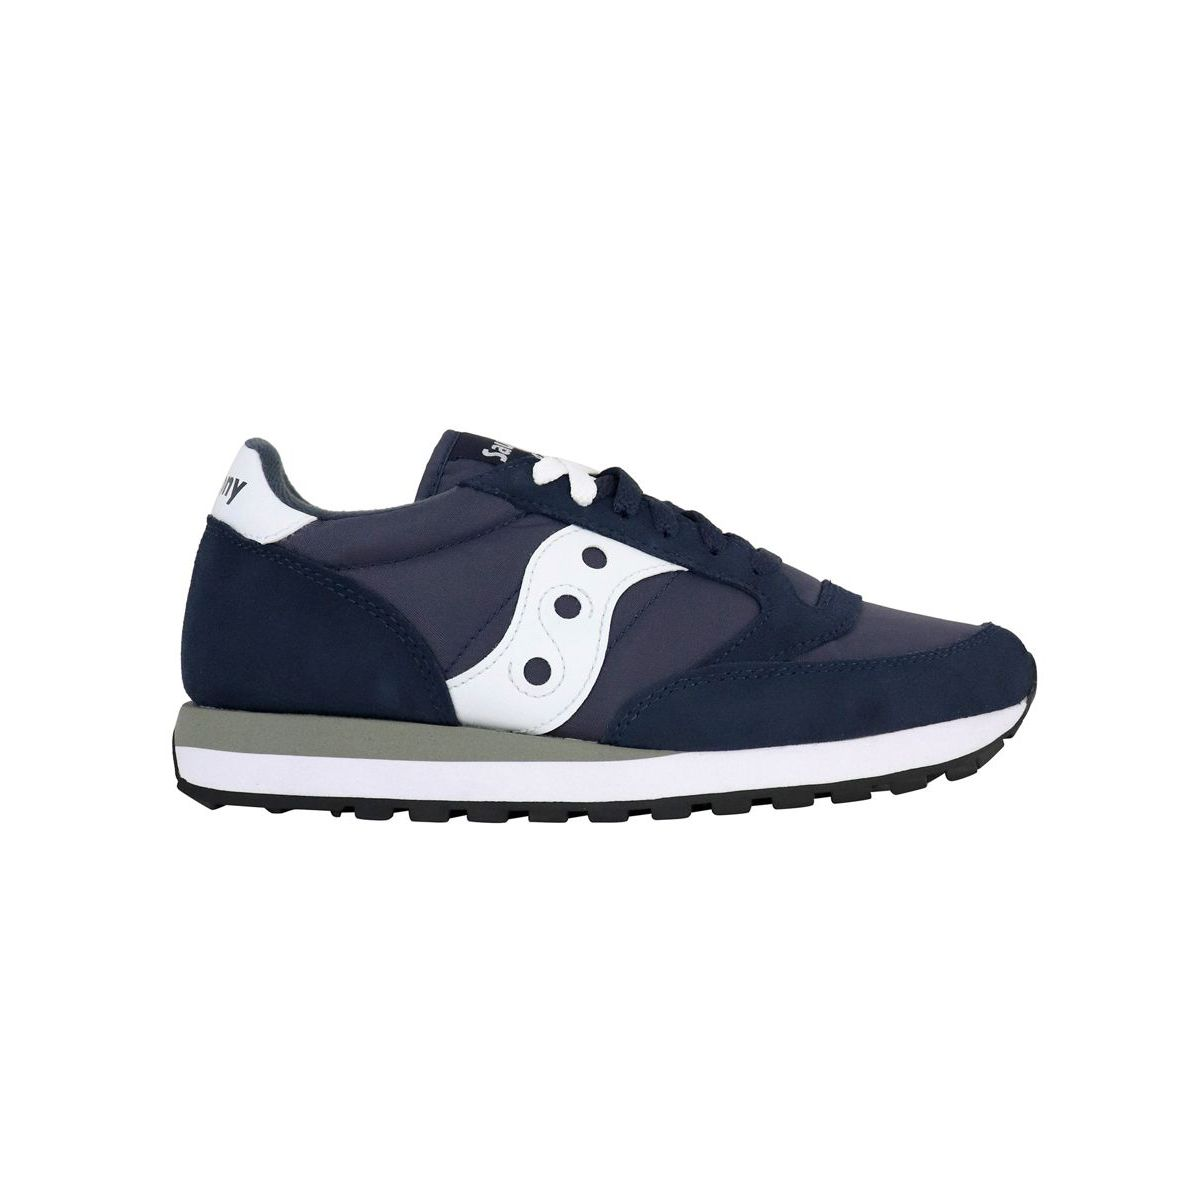 Sneakers JAZZ ORIGINALS 2044 Navy Saucony